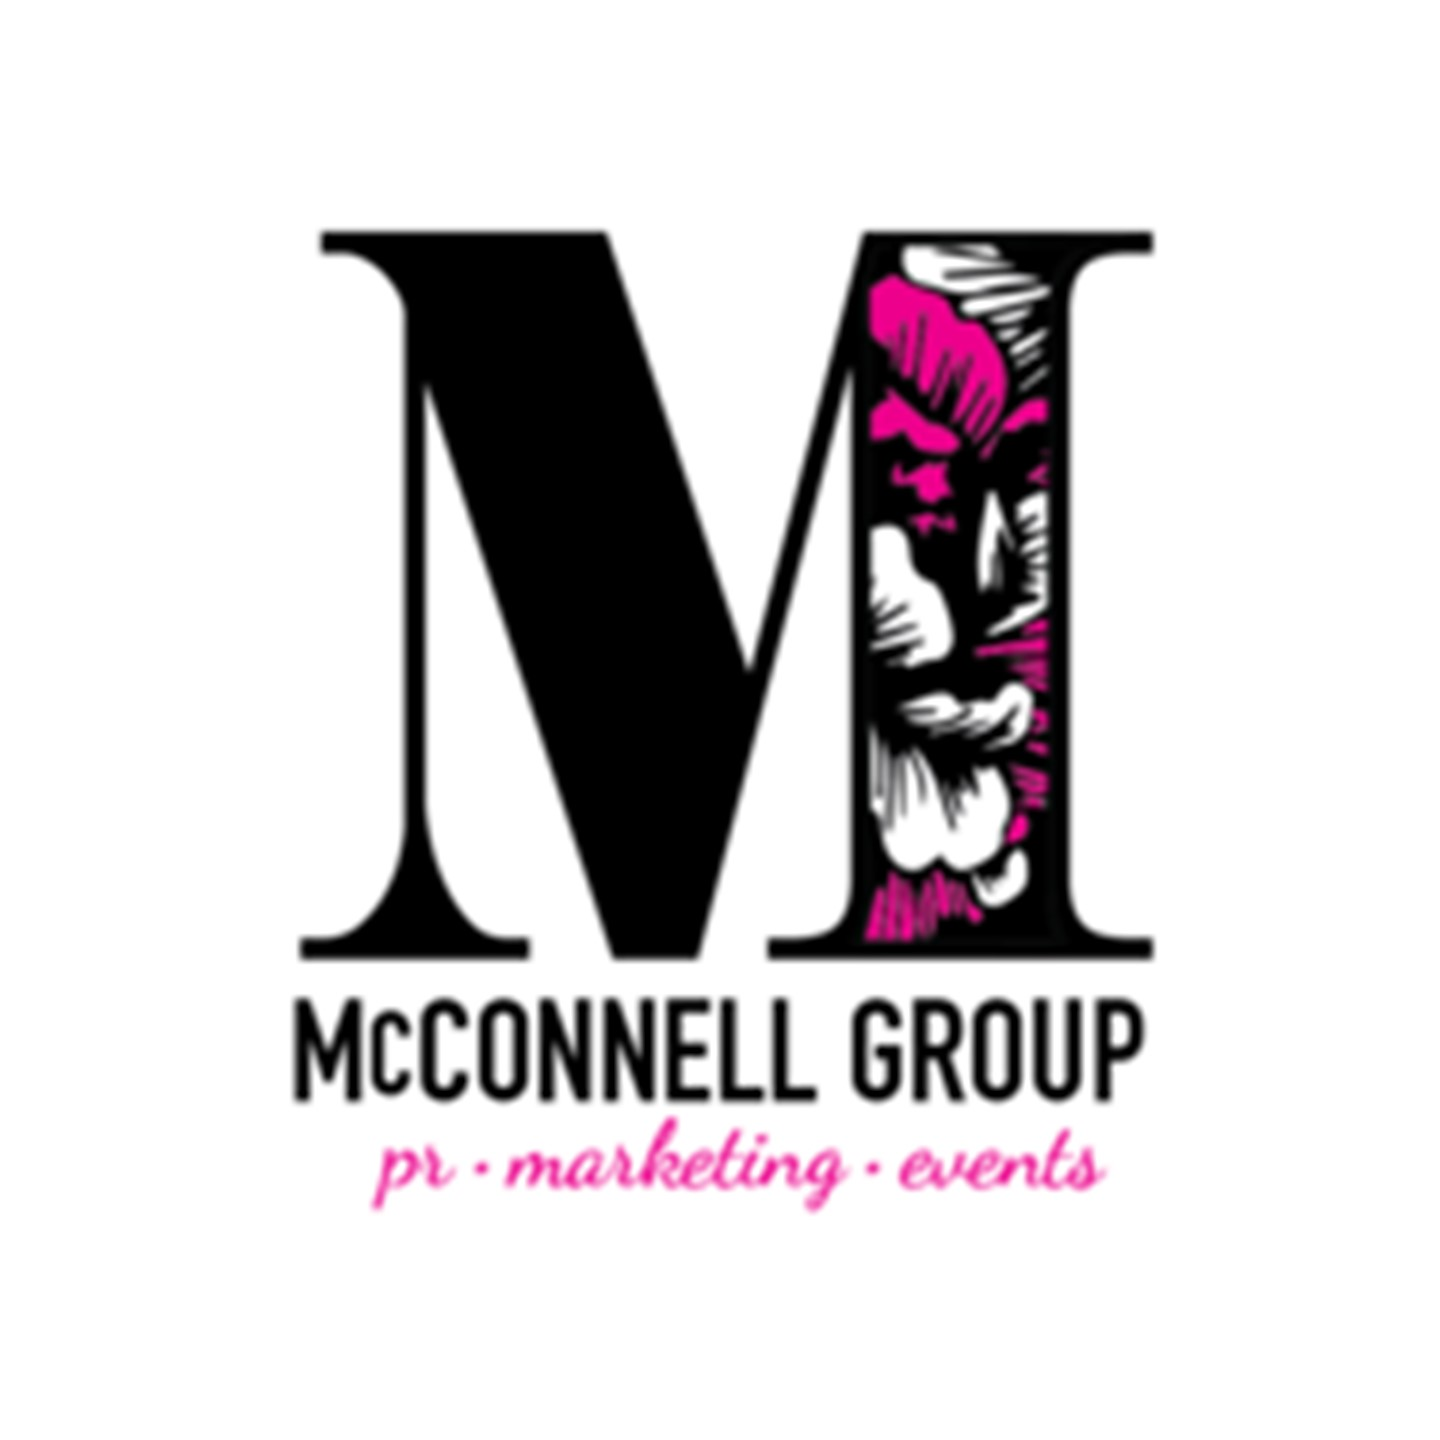 McConnell Group